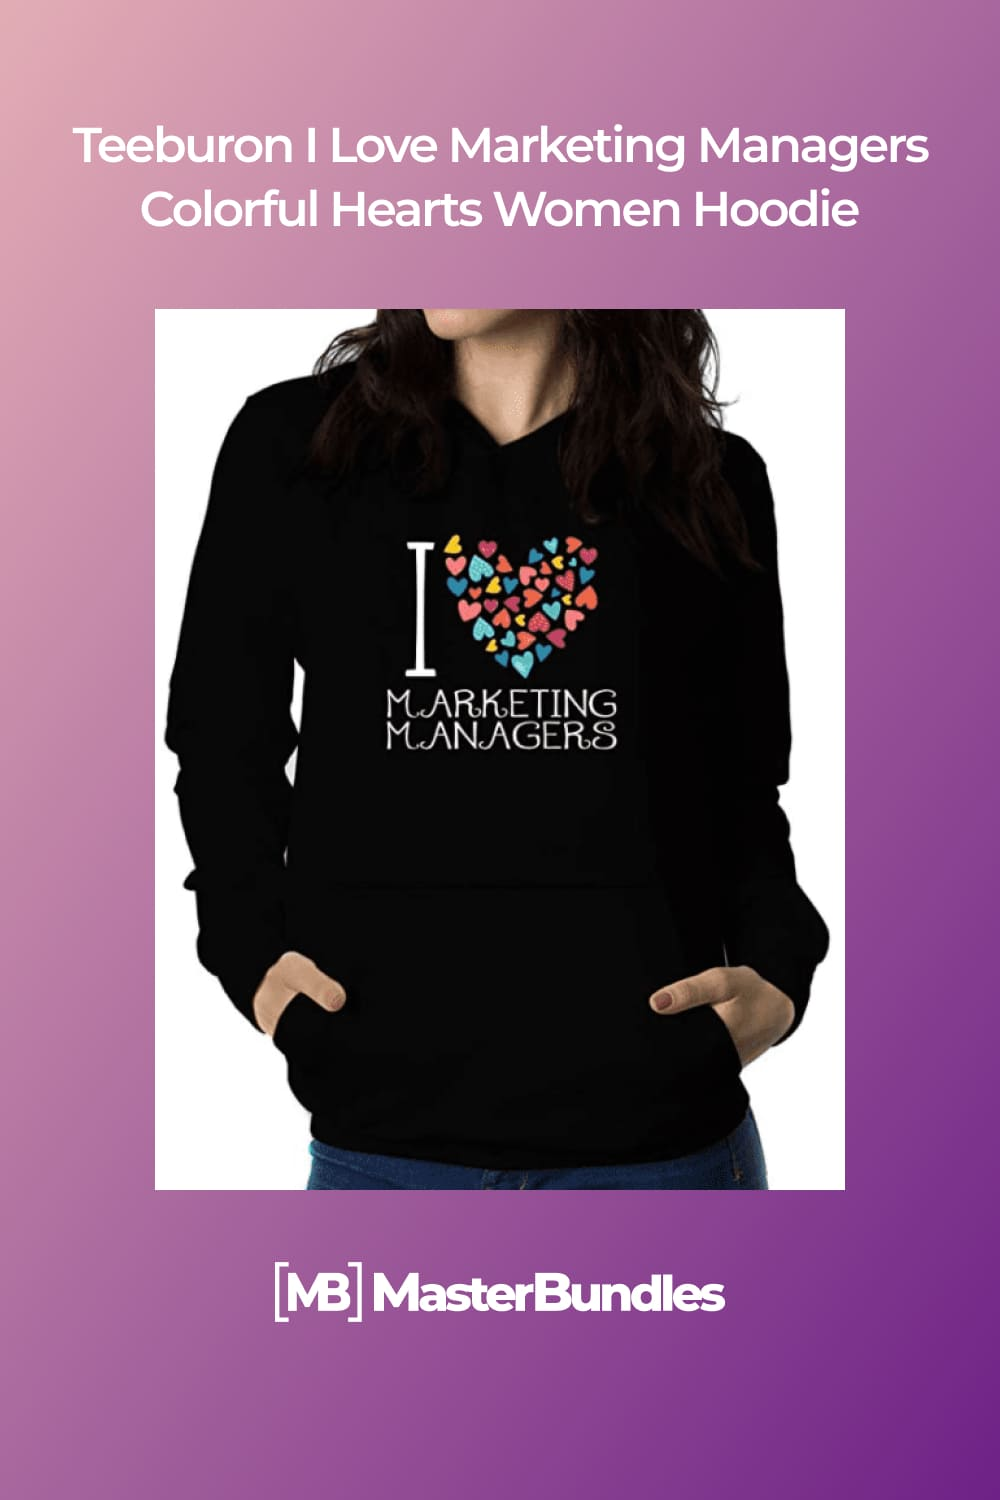 This hoodie is perfect for a holidays, graduation, birthday or another special occasion.